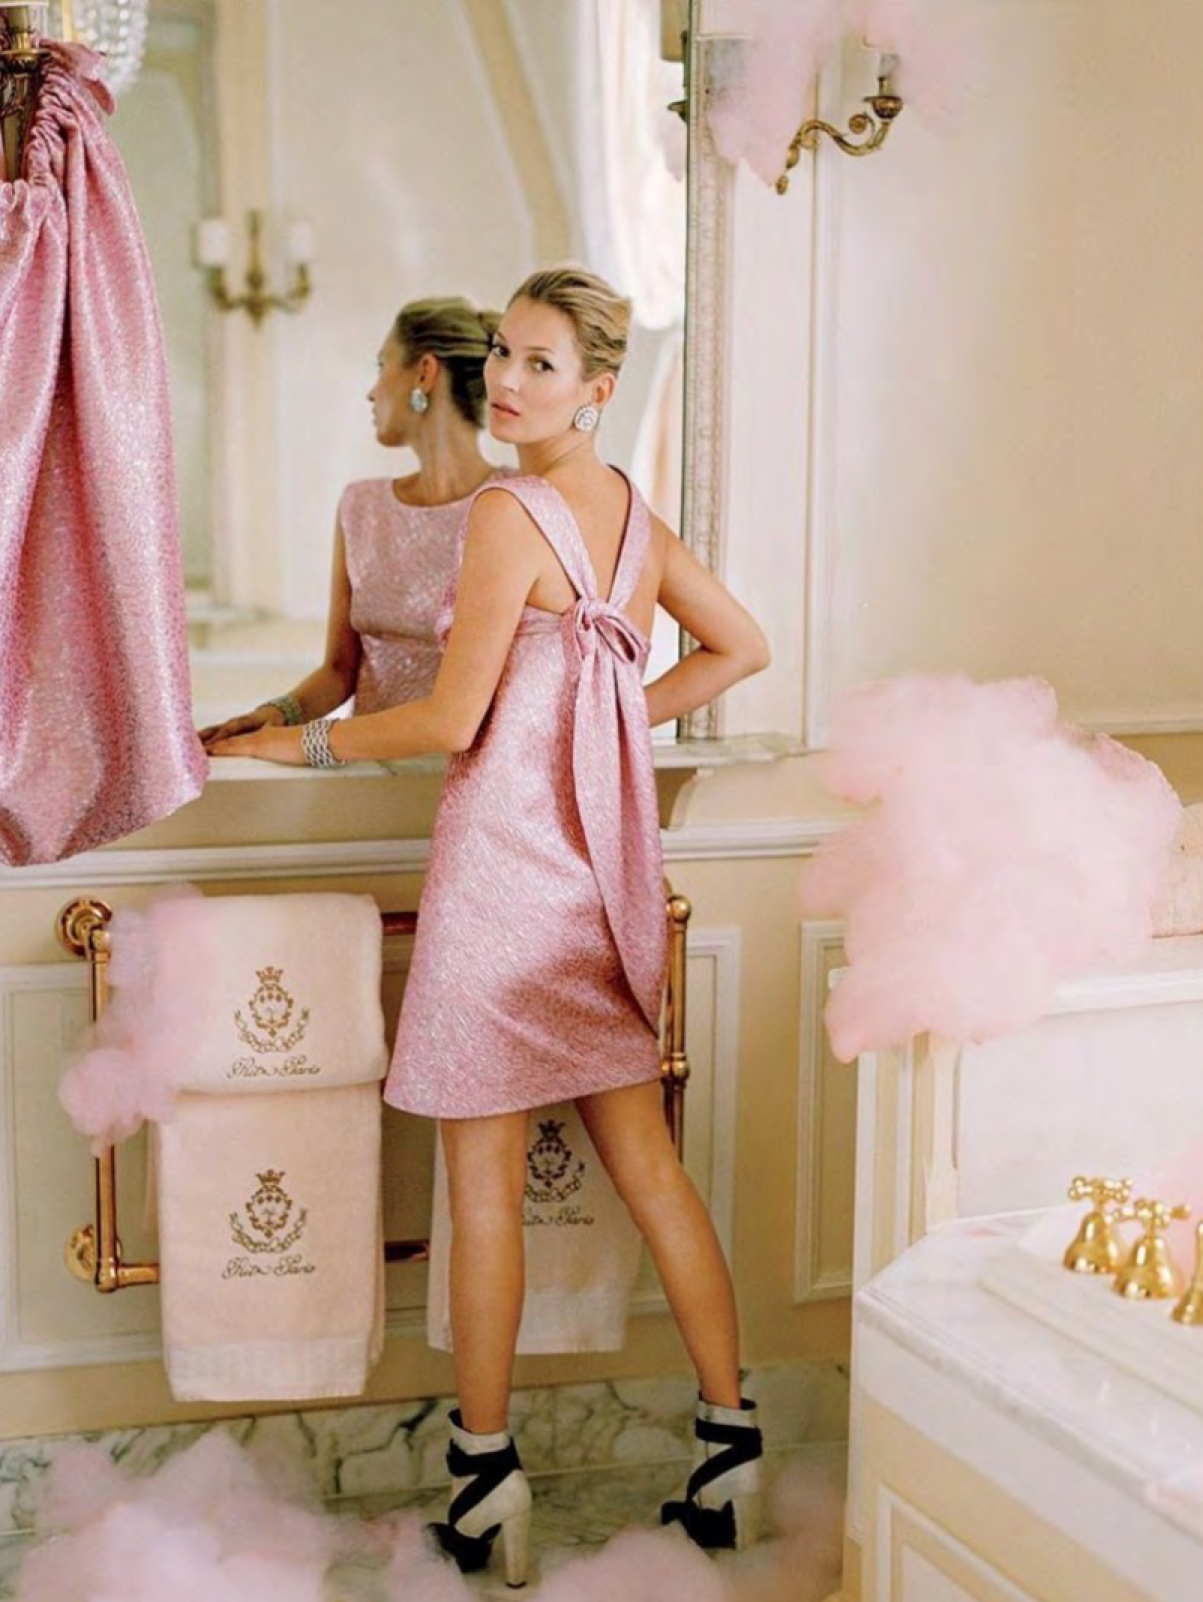 a blond female model in a pink dress with a bow and black and white heeled boots. She is standing in front of a mirror with pink bubble bath bubbles around the room.